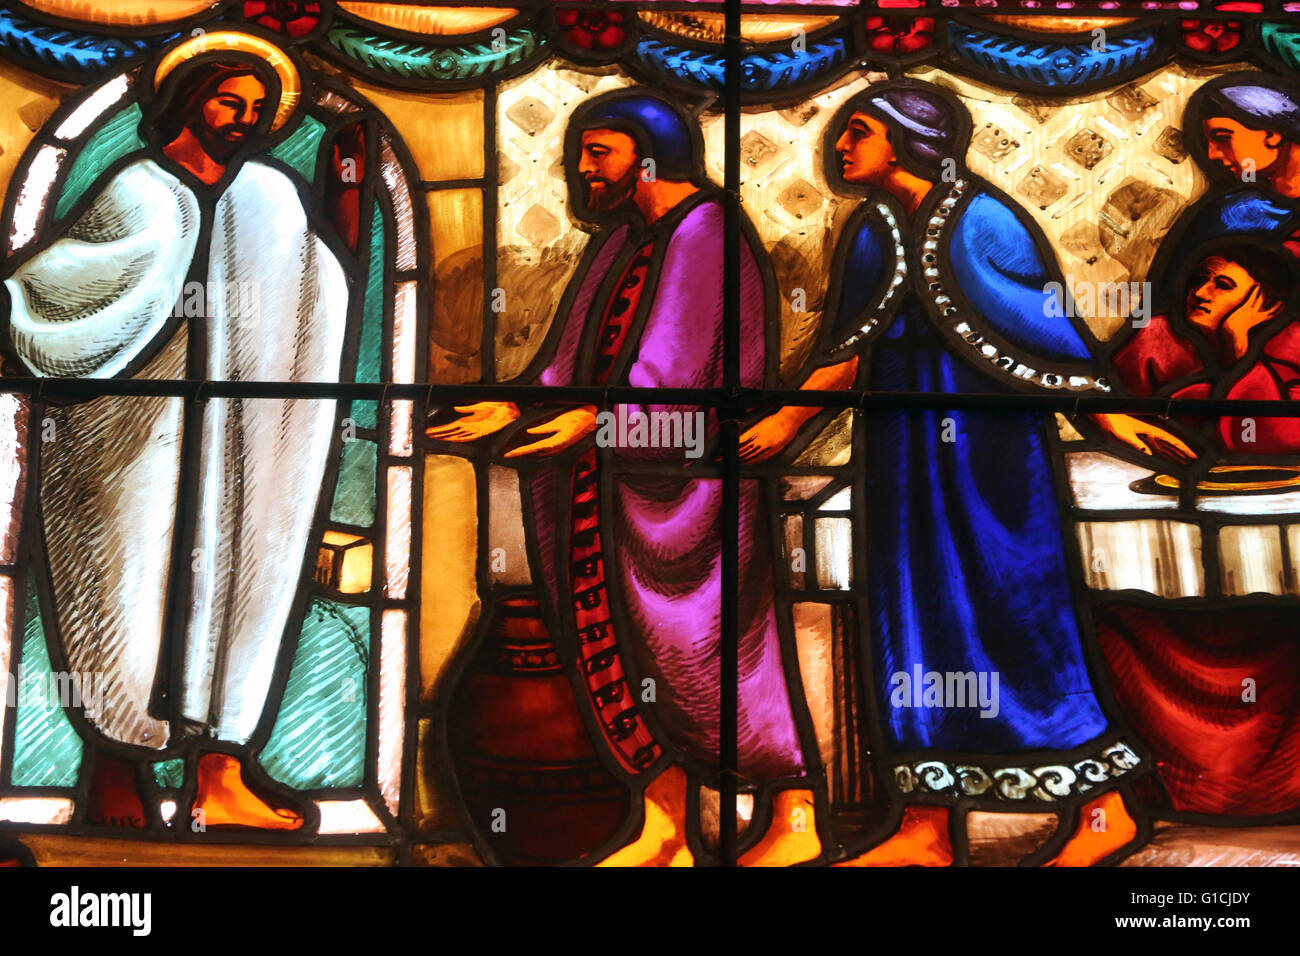 Carouge protestant temple.  Stained glass window. John 2:2 Jesus also was invited to the wedding with his disciples. - Stock Image